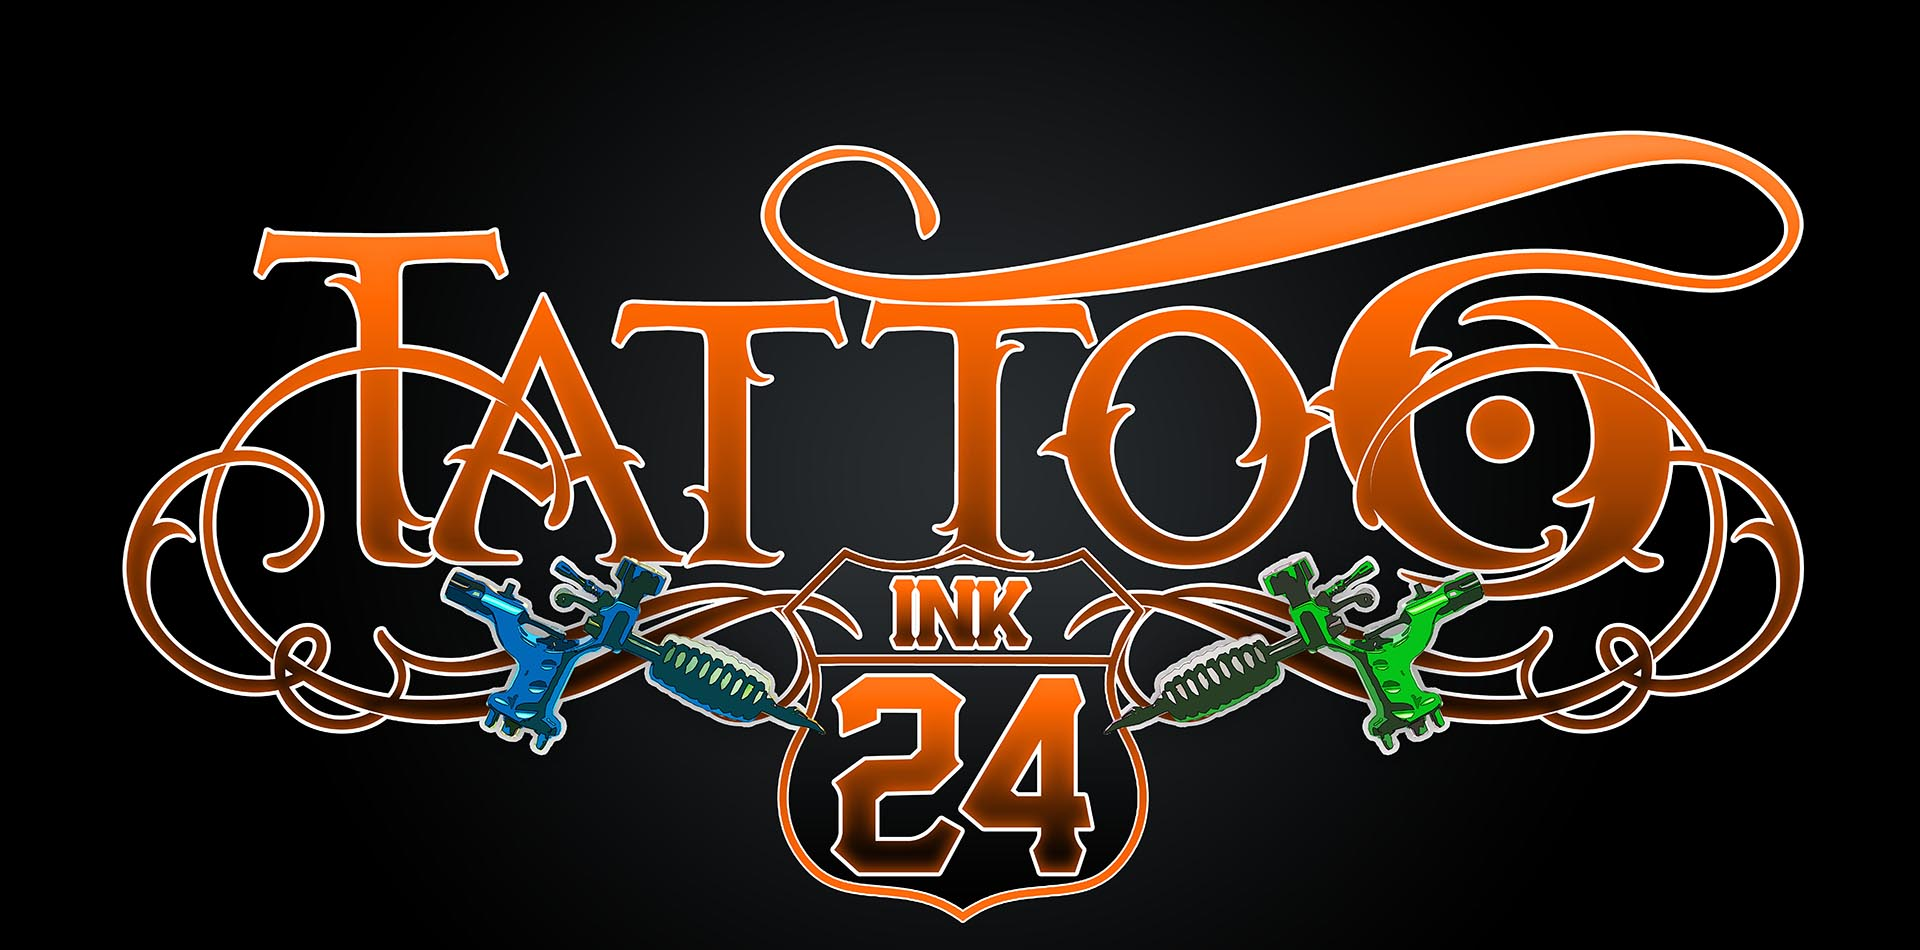 Logotipo Tattoo ink24